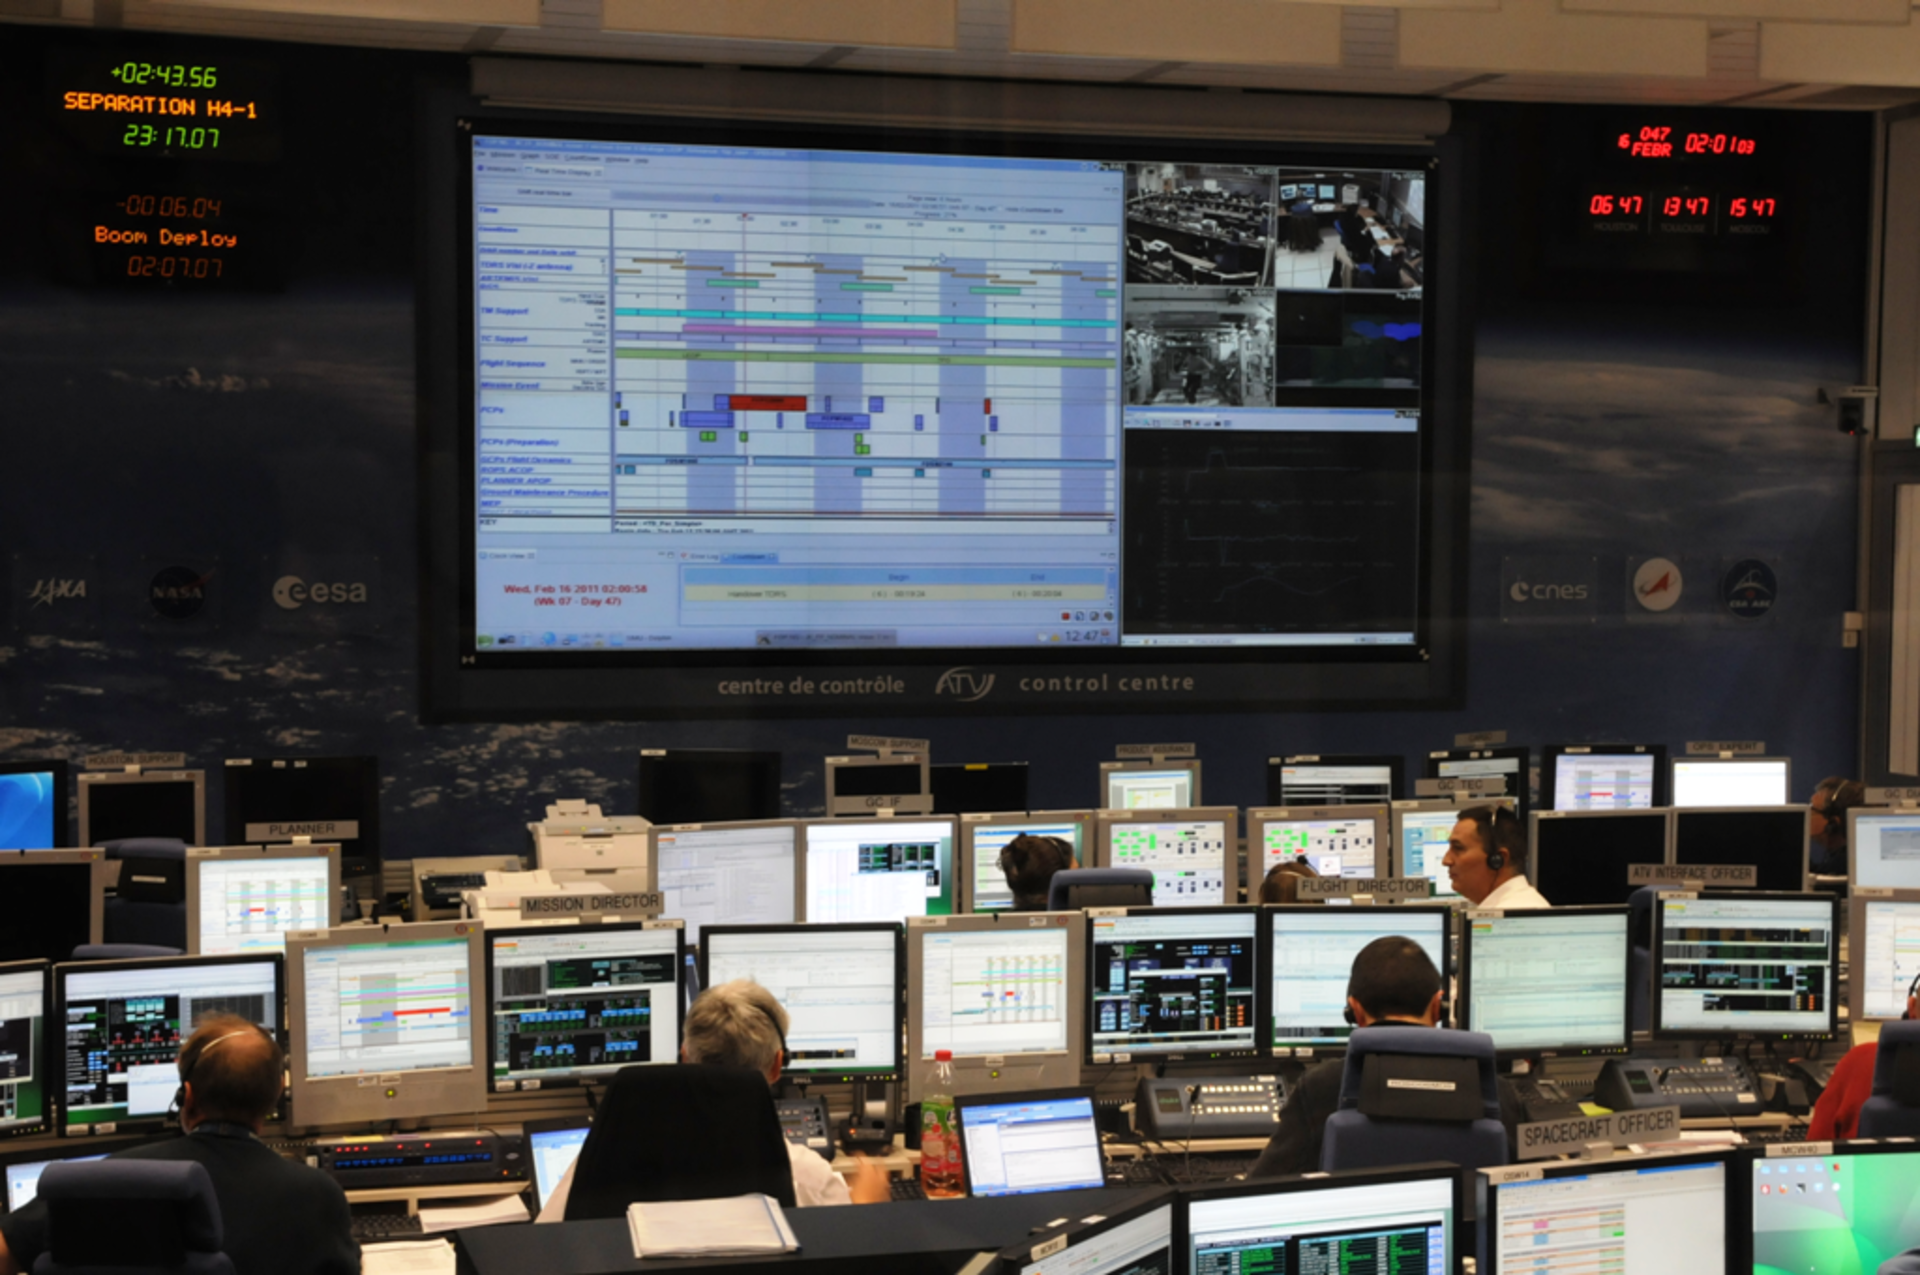 ESA's ATV Control Centre during simulation training 27 January 2011